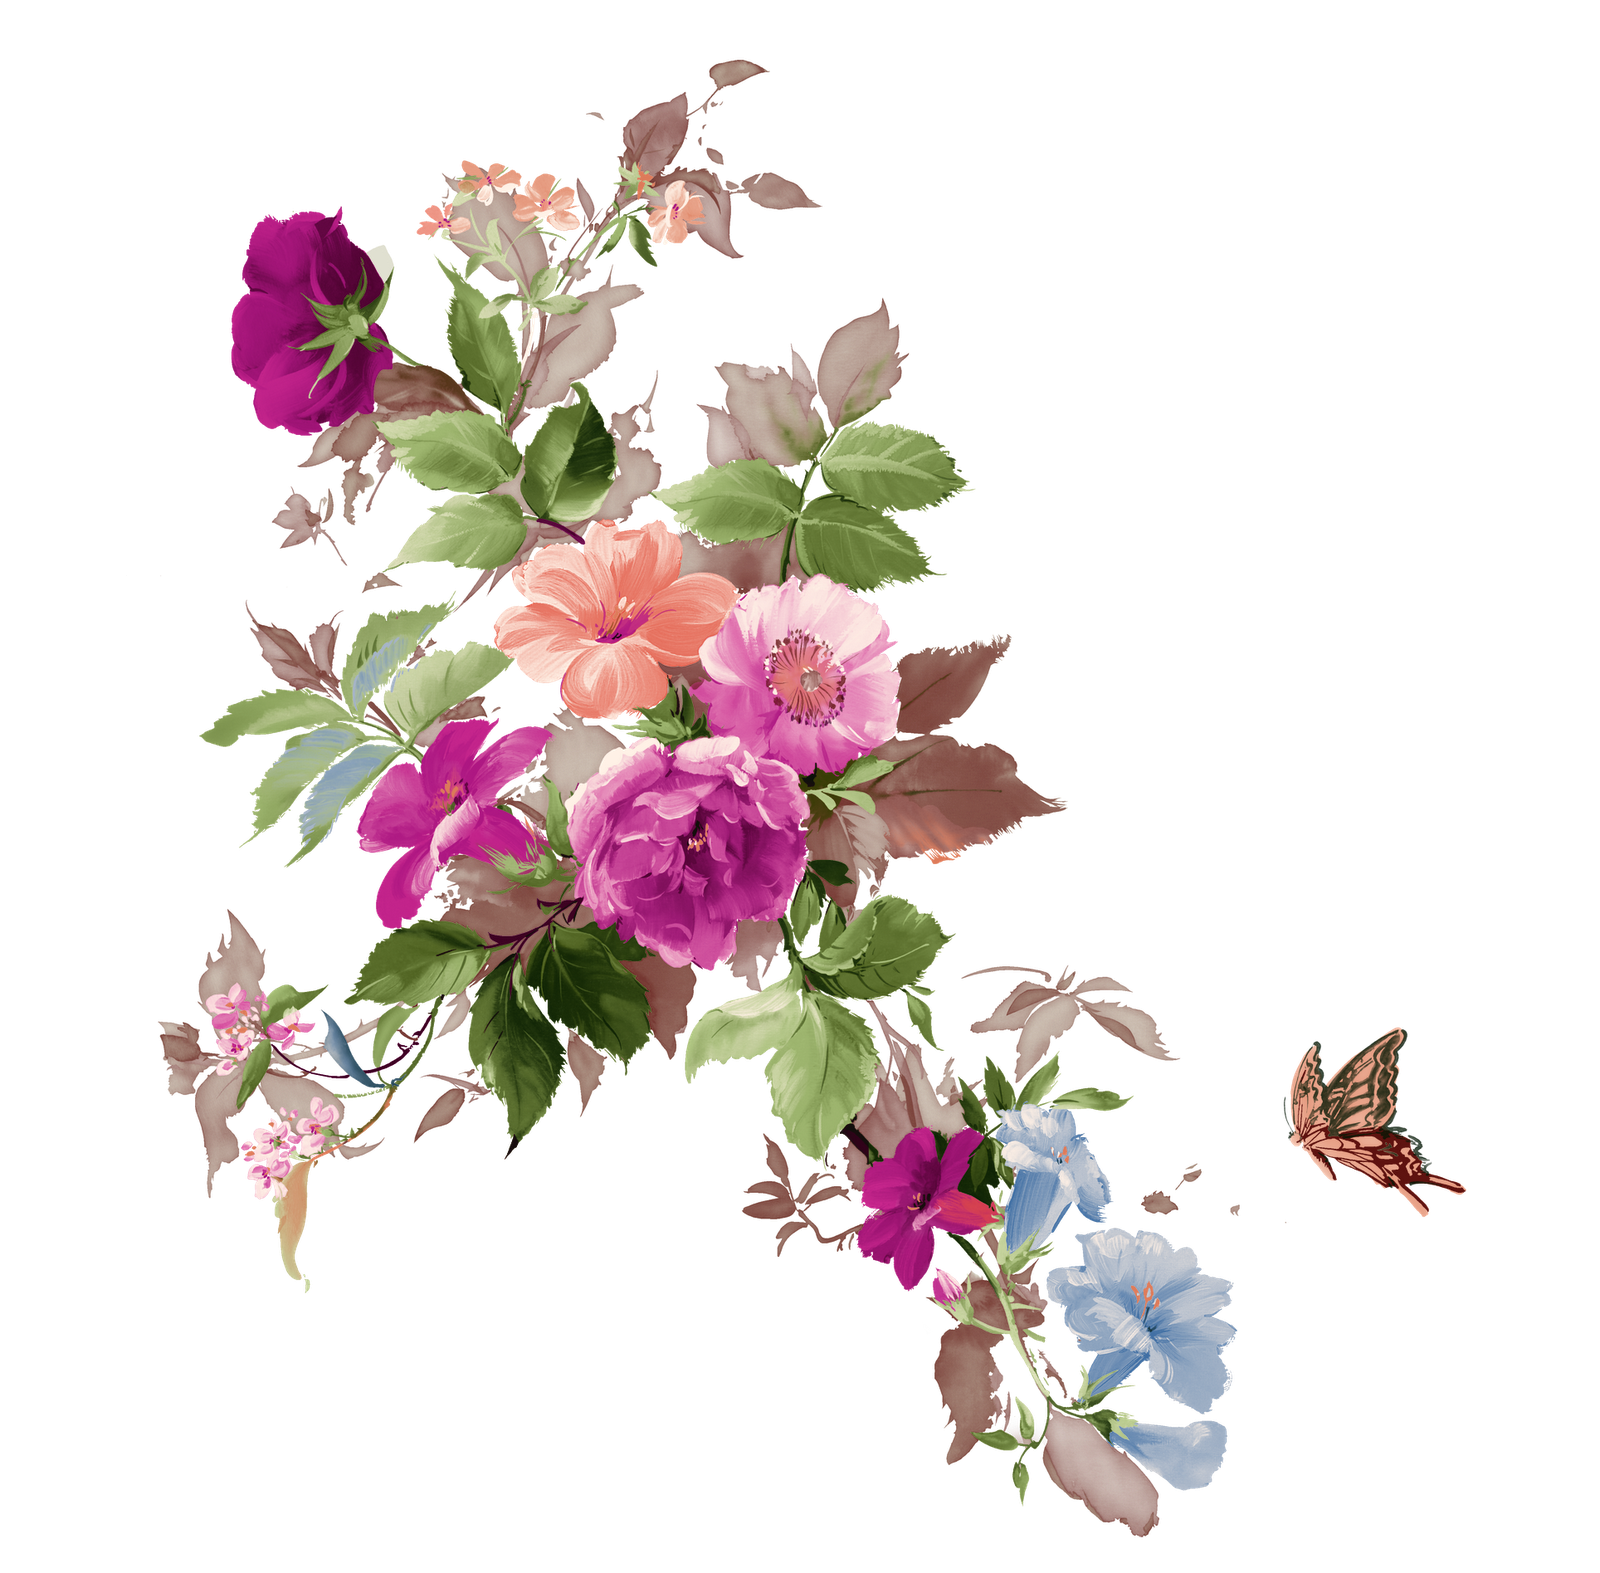 PNG Free Download Flower #17943.